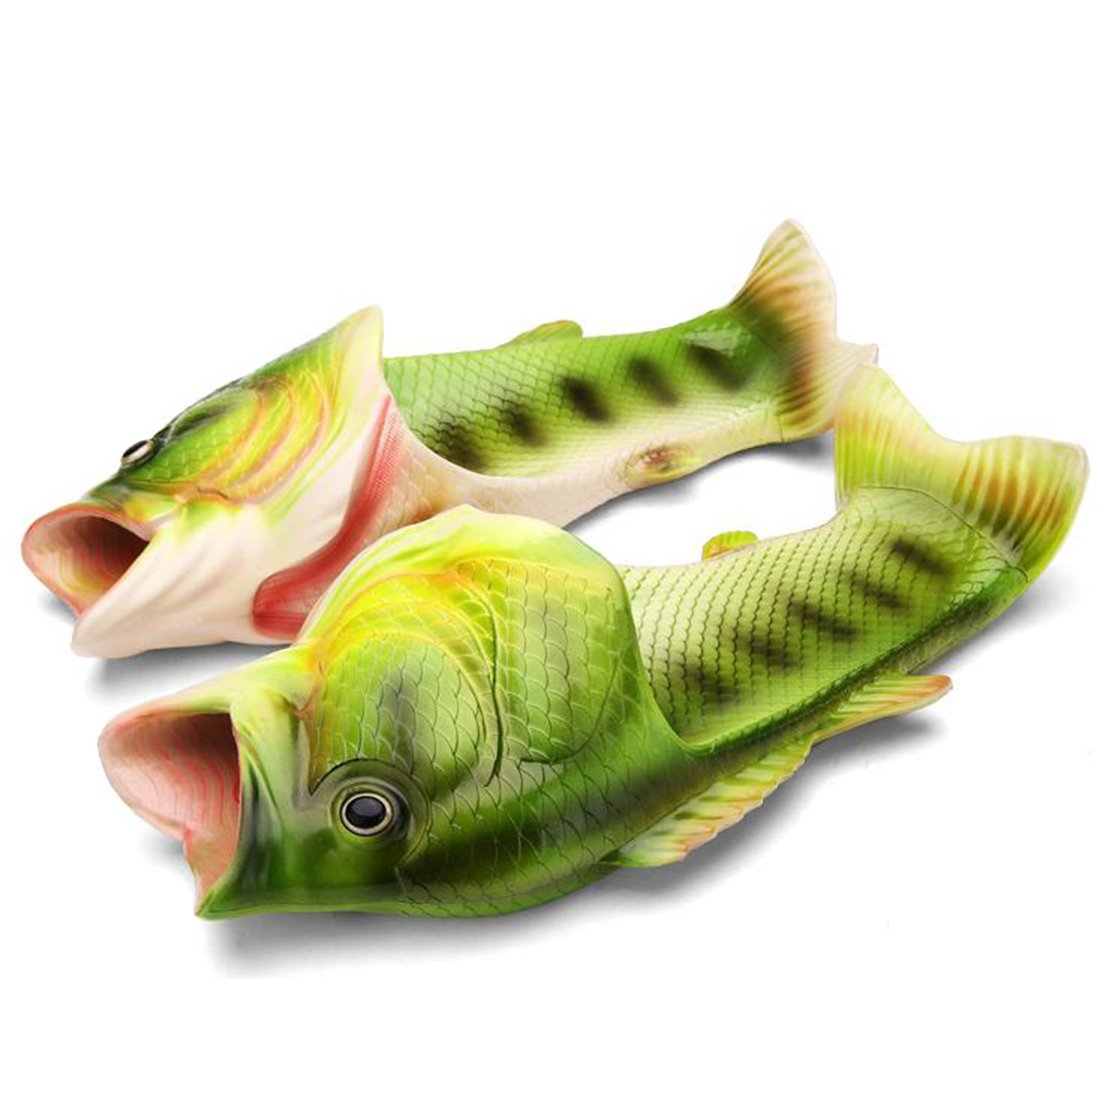 CREE Fish Animal Slippers Summer Beach Sandals Shower Slippers Non-Slip Beach Shoes Wear for Women Men and Kids Casual Shoe (8 Male/9 Female US, Green)